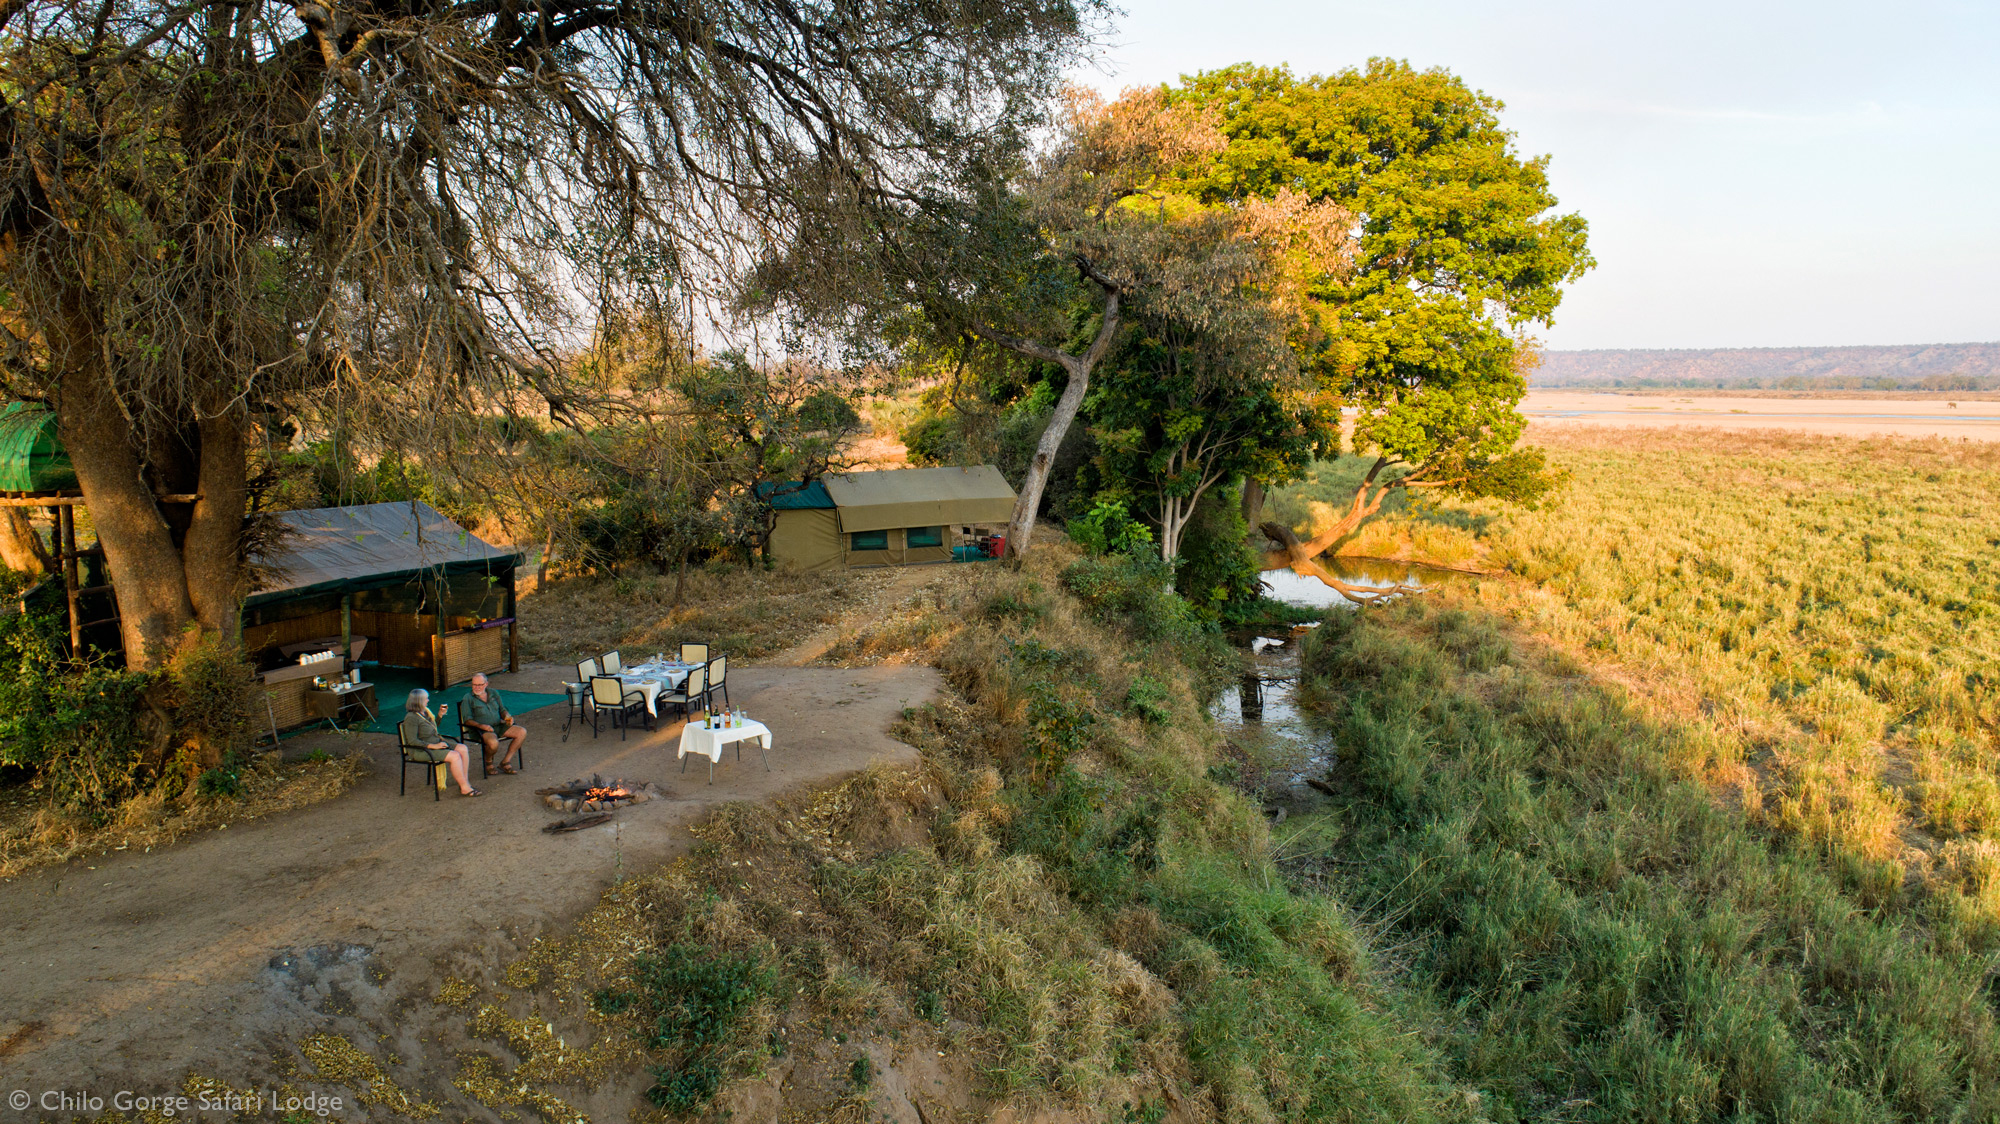 Chilo Gorge Tented Camp aerial view